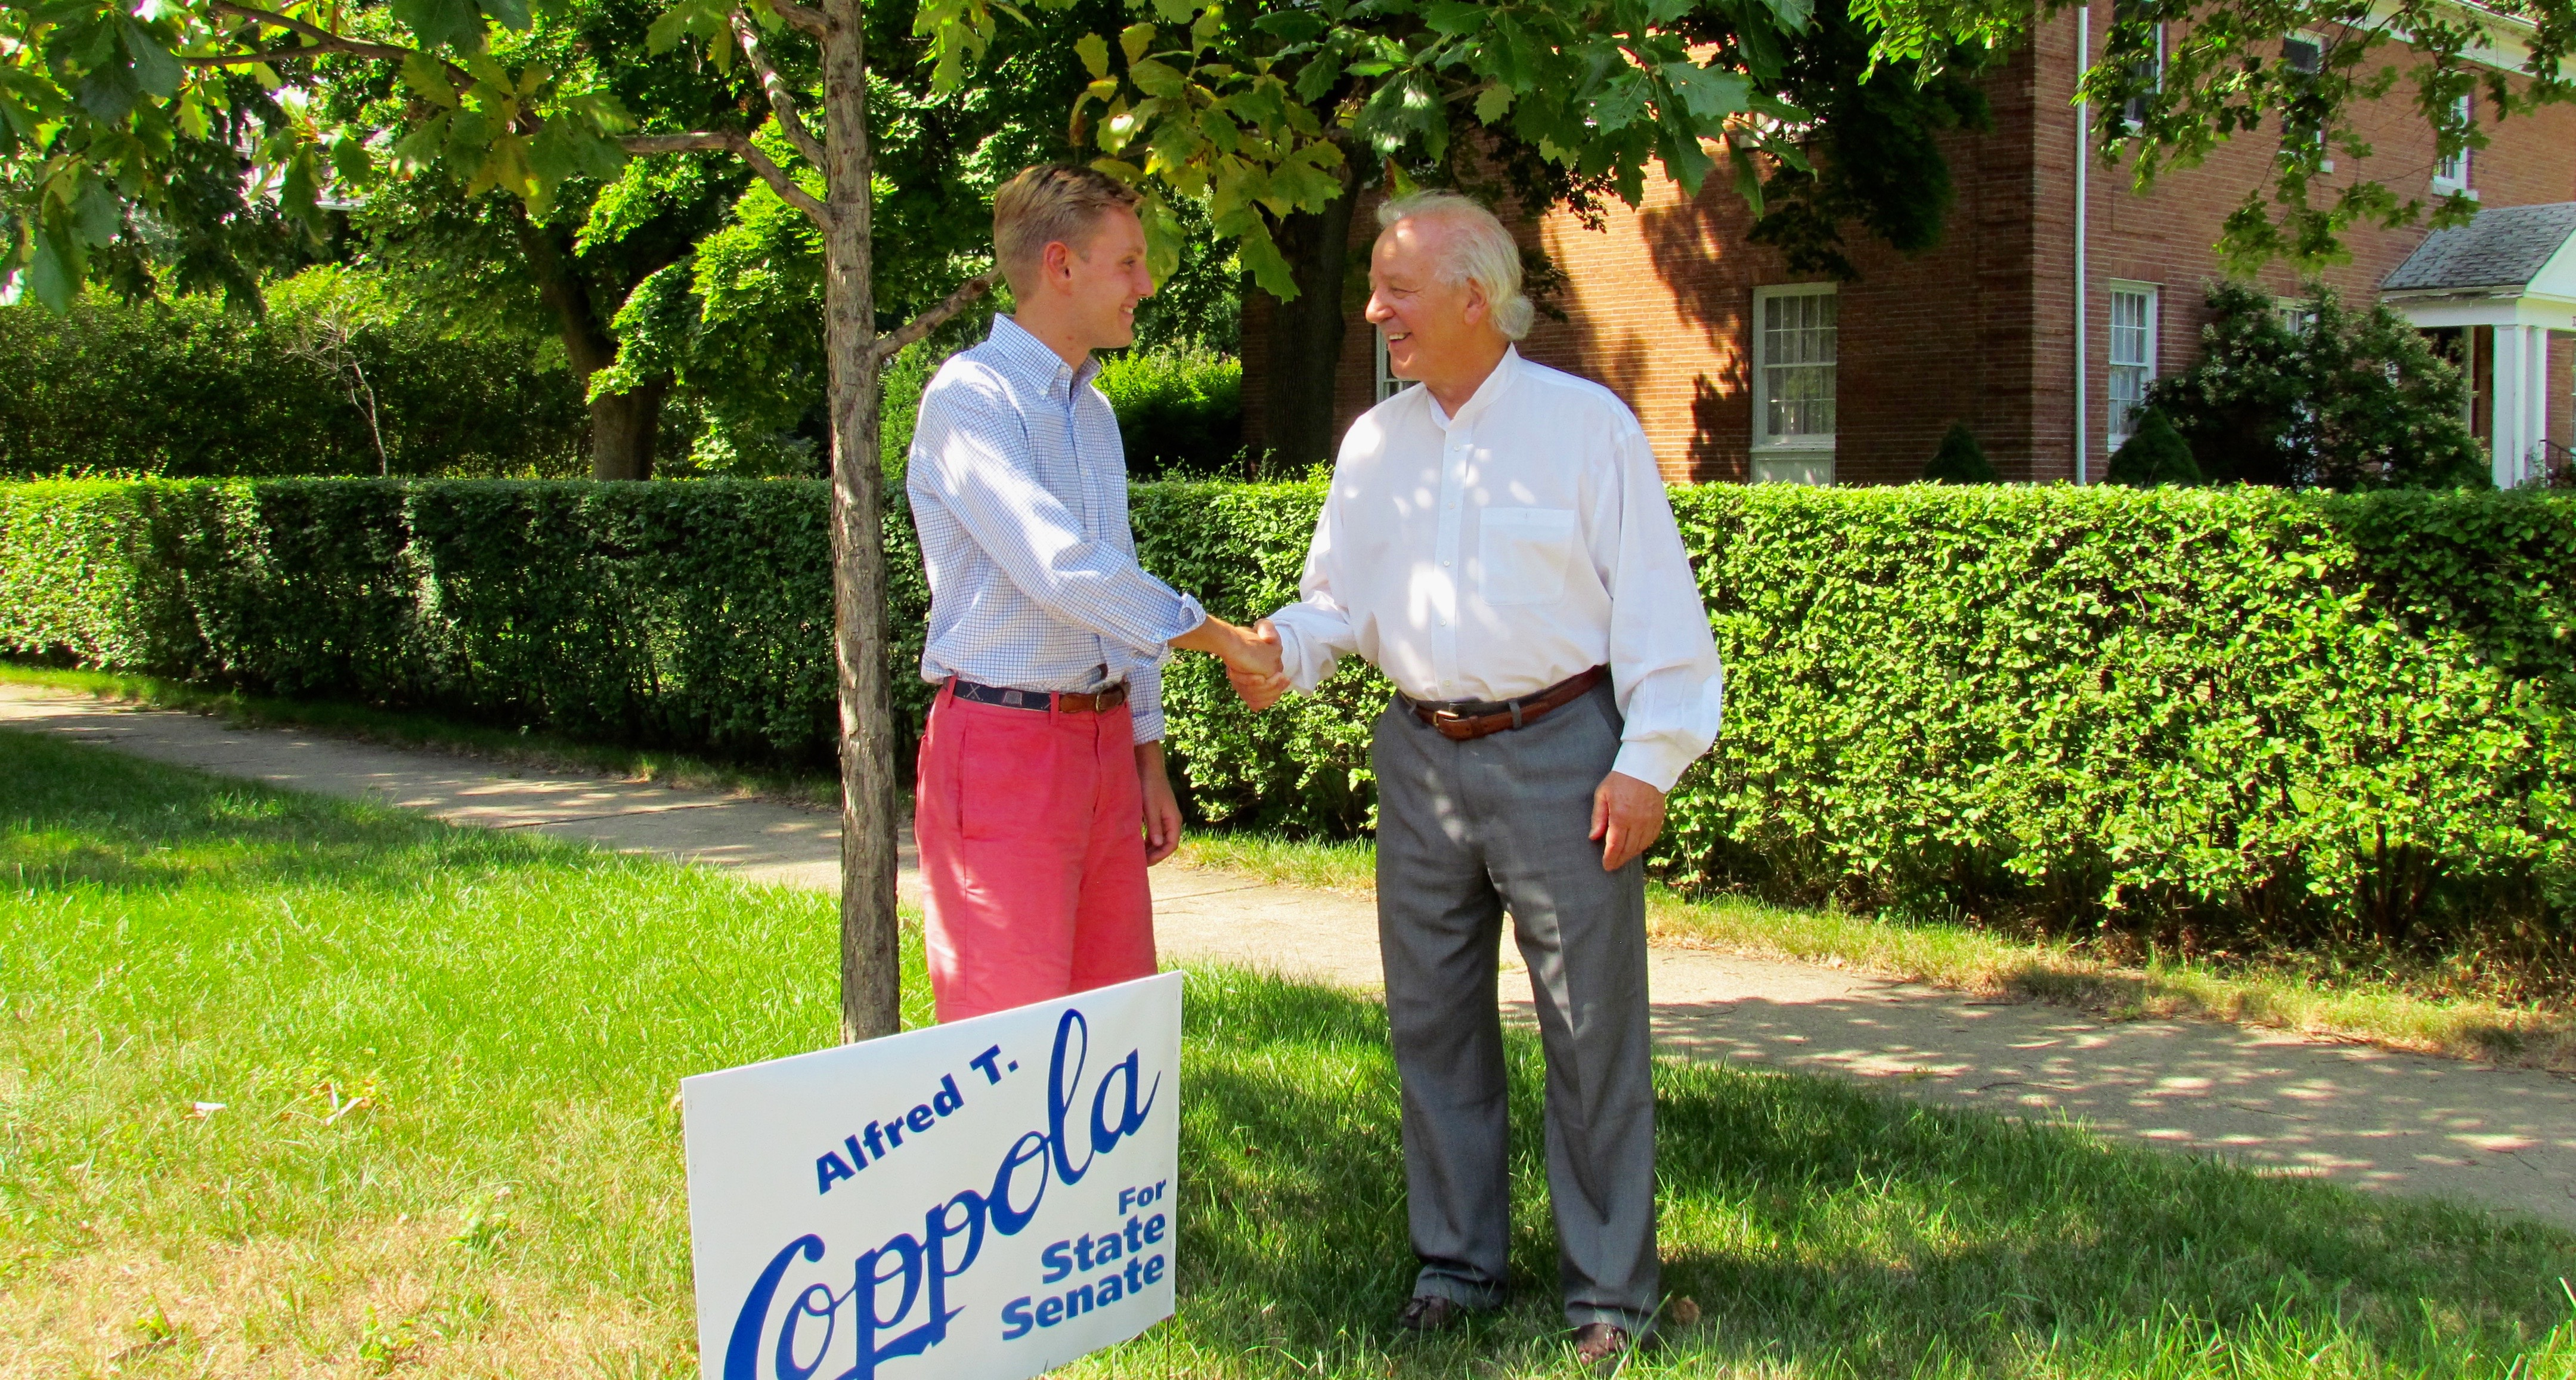 Coppola with his campaign manager, Sean Mathews, in the Parkside neighborhood of North Buffalo. Mathews is a pre-med student at Canisius College who knows Coppola as a fellow parishioner at St. Mark's.